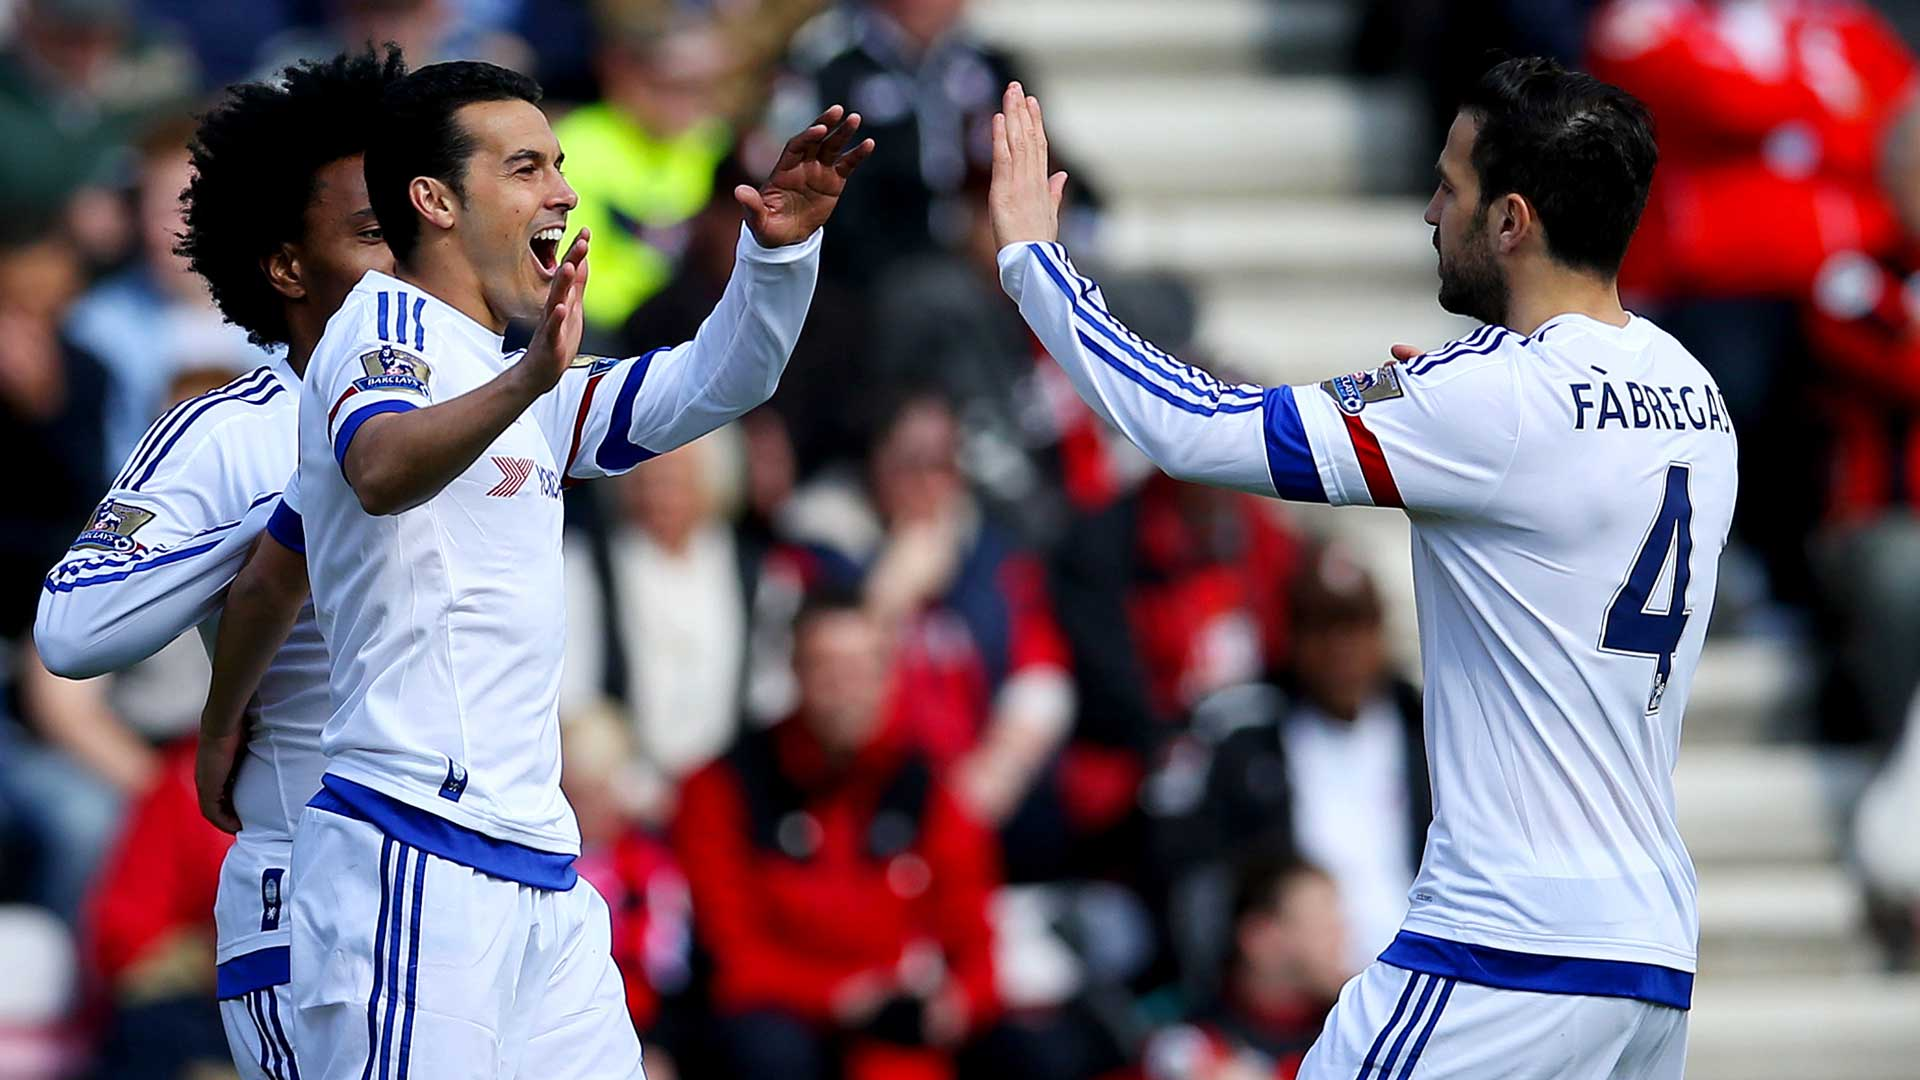 Pedro provides insight into the players he sits next to in the